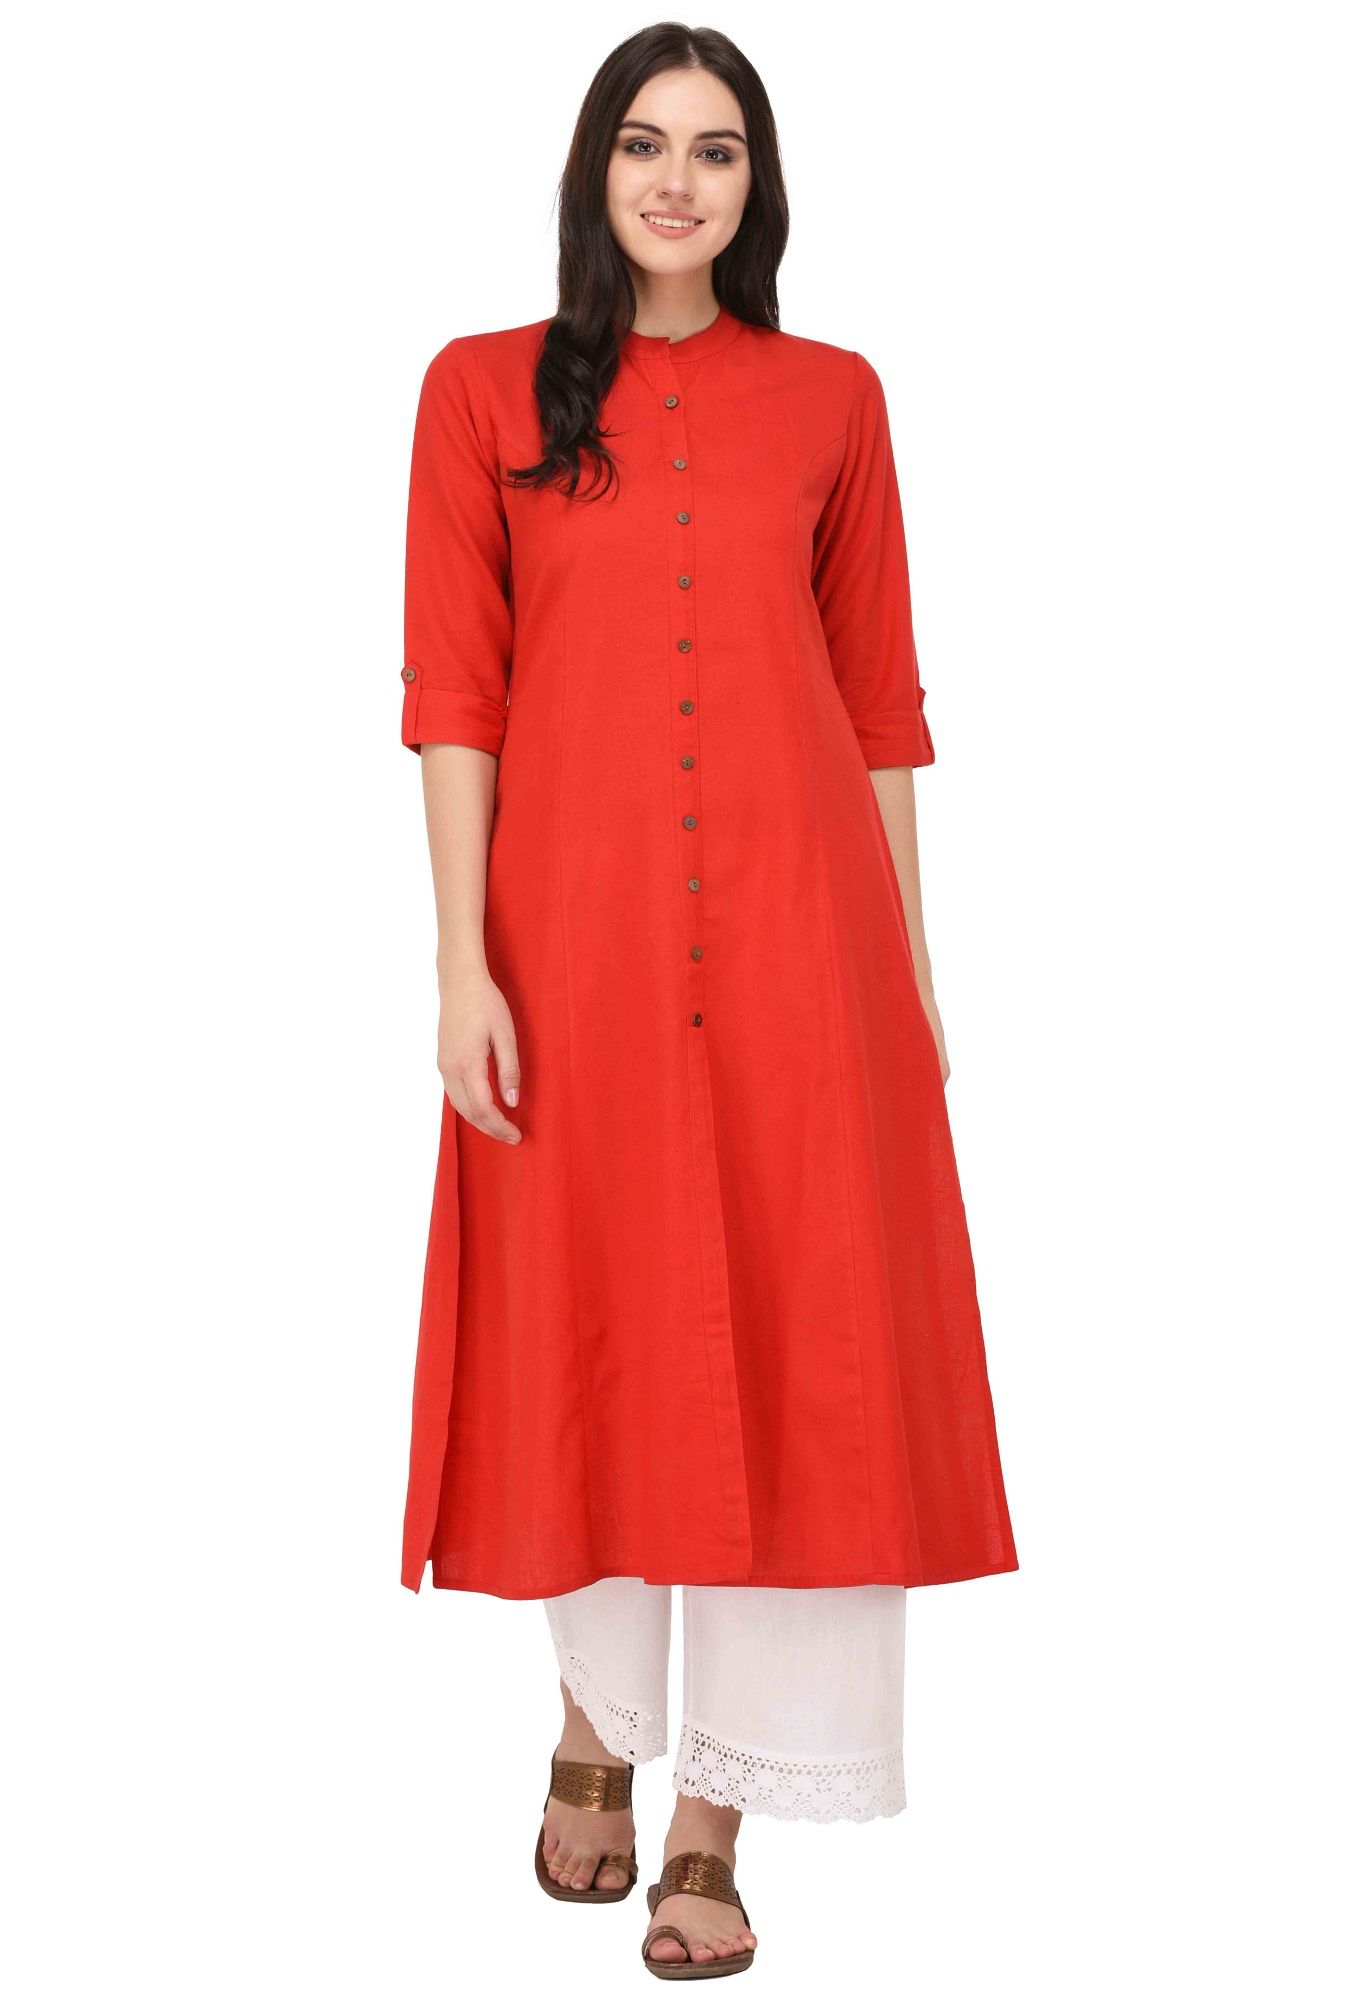 49ebd35333f85 Red Kurta With Fold Up Sleeves in 2019 | Desi outfits | Red kurta ...